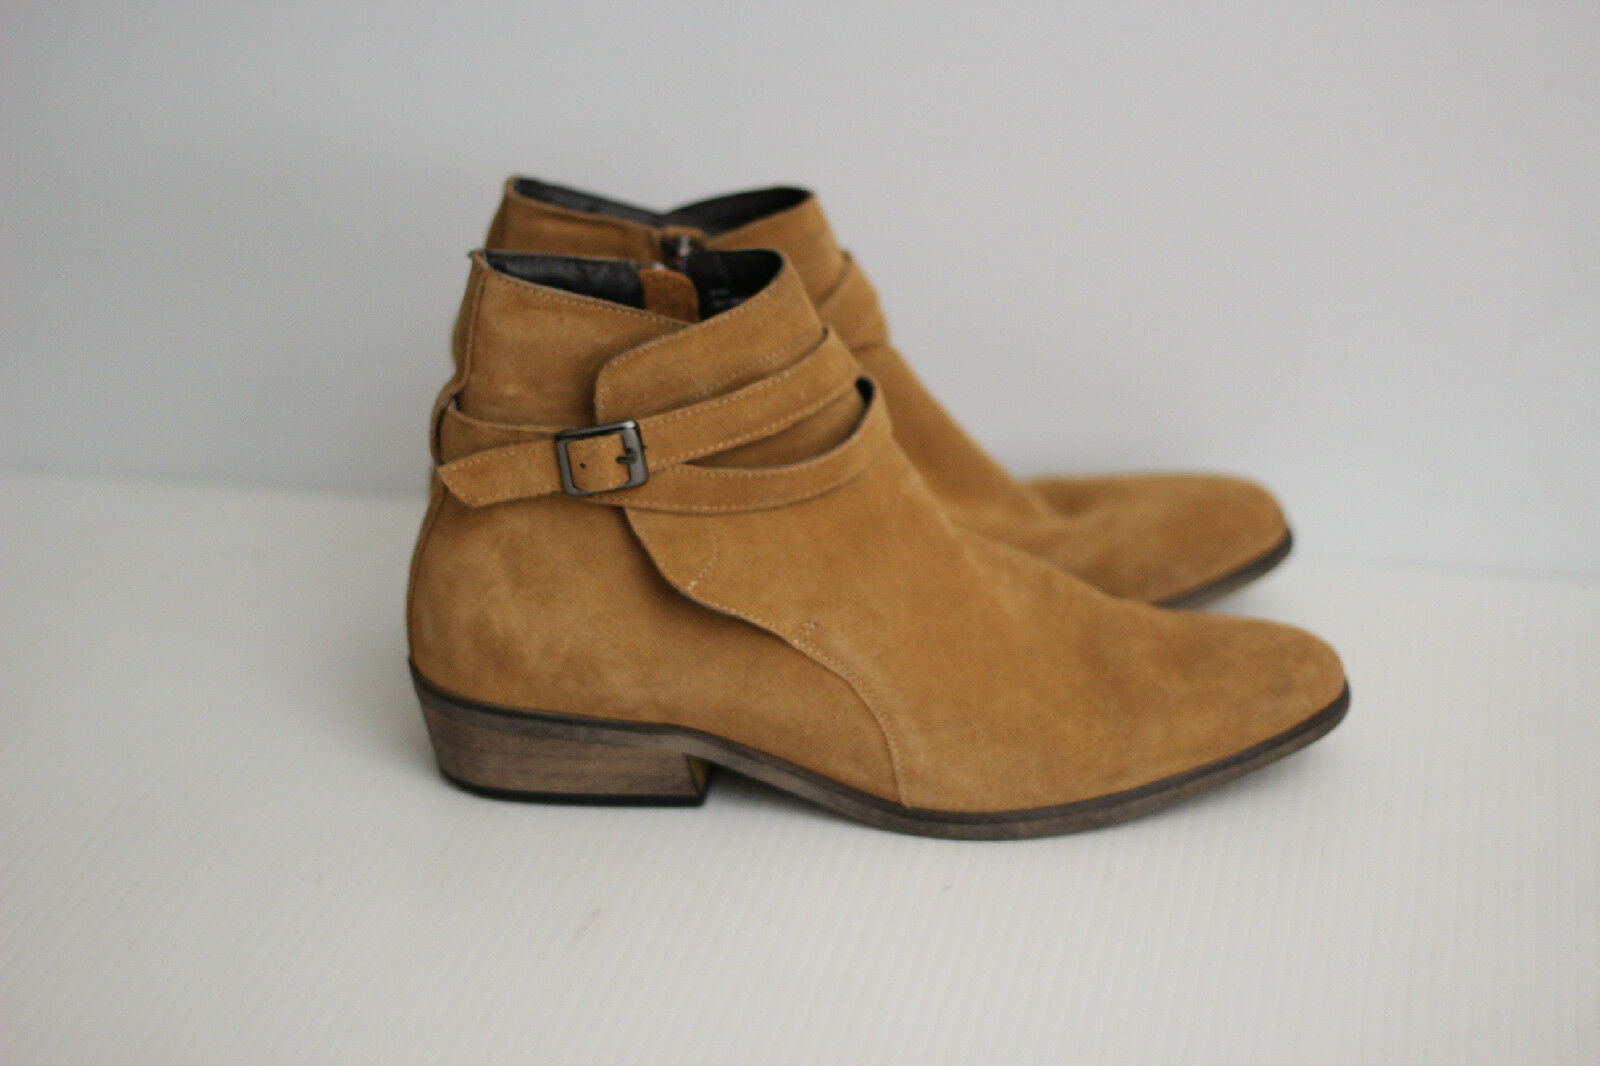 The Rail 'Seneca' Buckle Zip Up Up Zip Ankle Boot - Camel Tan Suede 7-7.5US / 41M (Y91) 9a1537